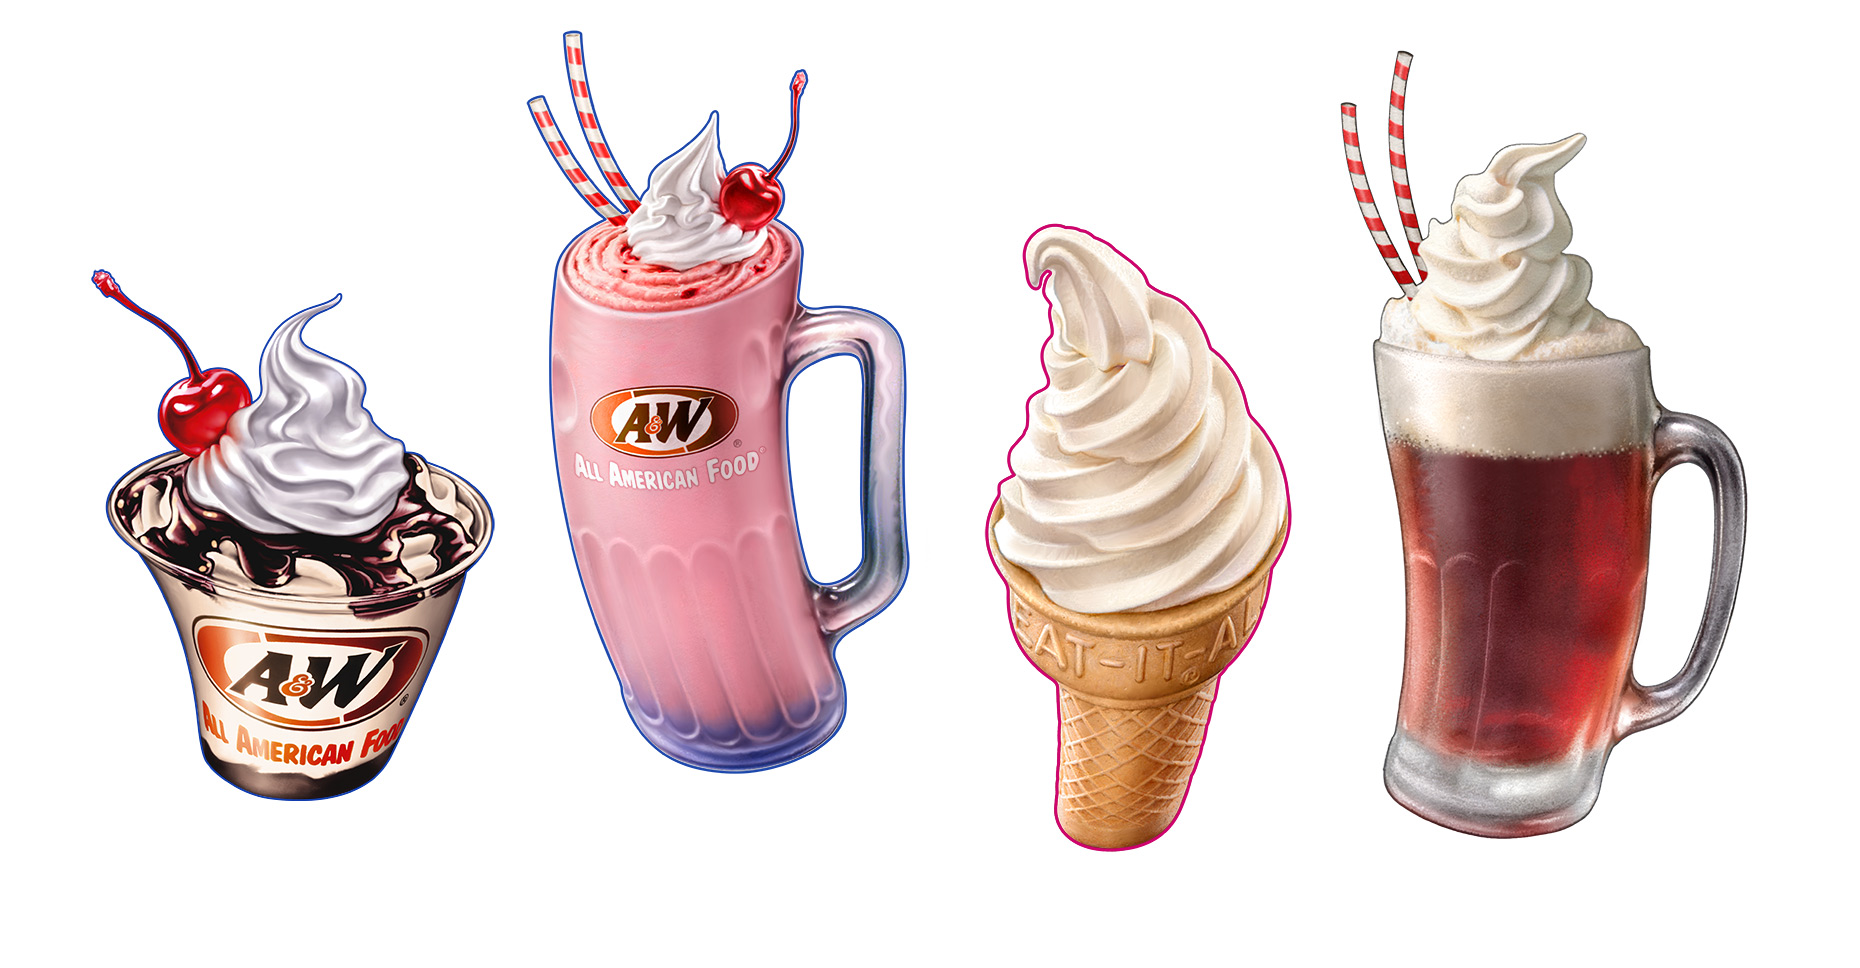 Matt_Zumbo_Food_beverage_drink_shake_malt_float_IceCream_sundae 2